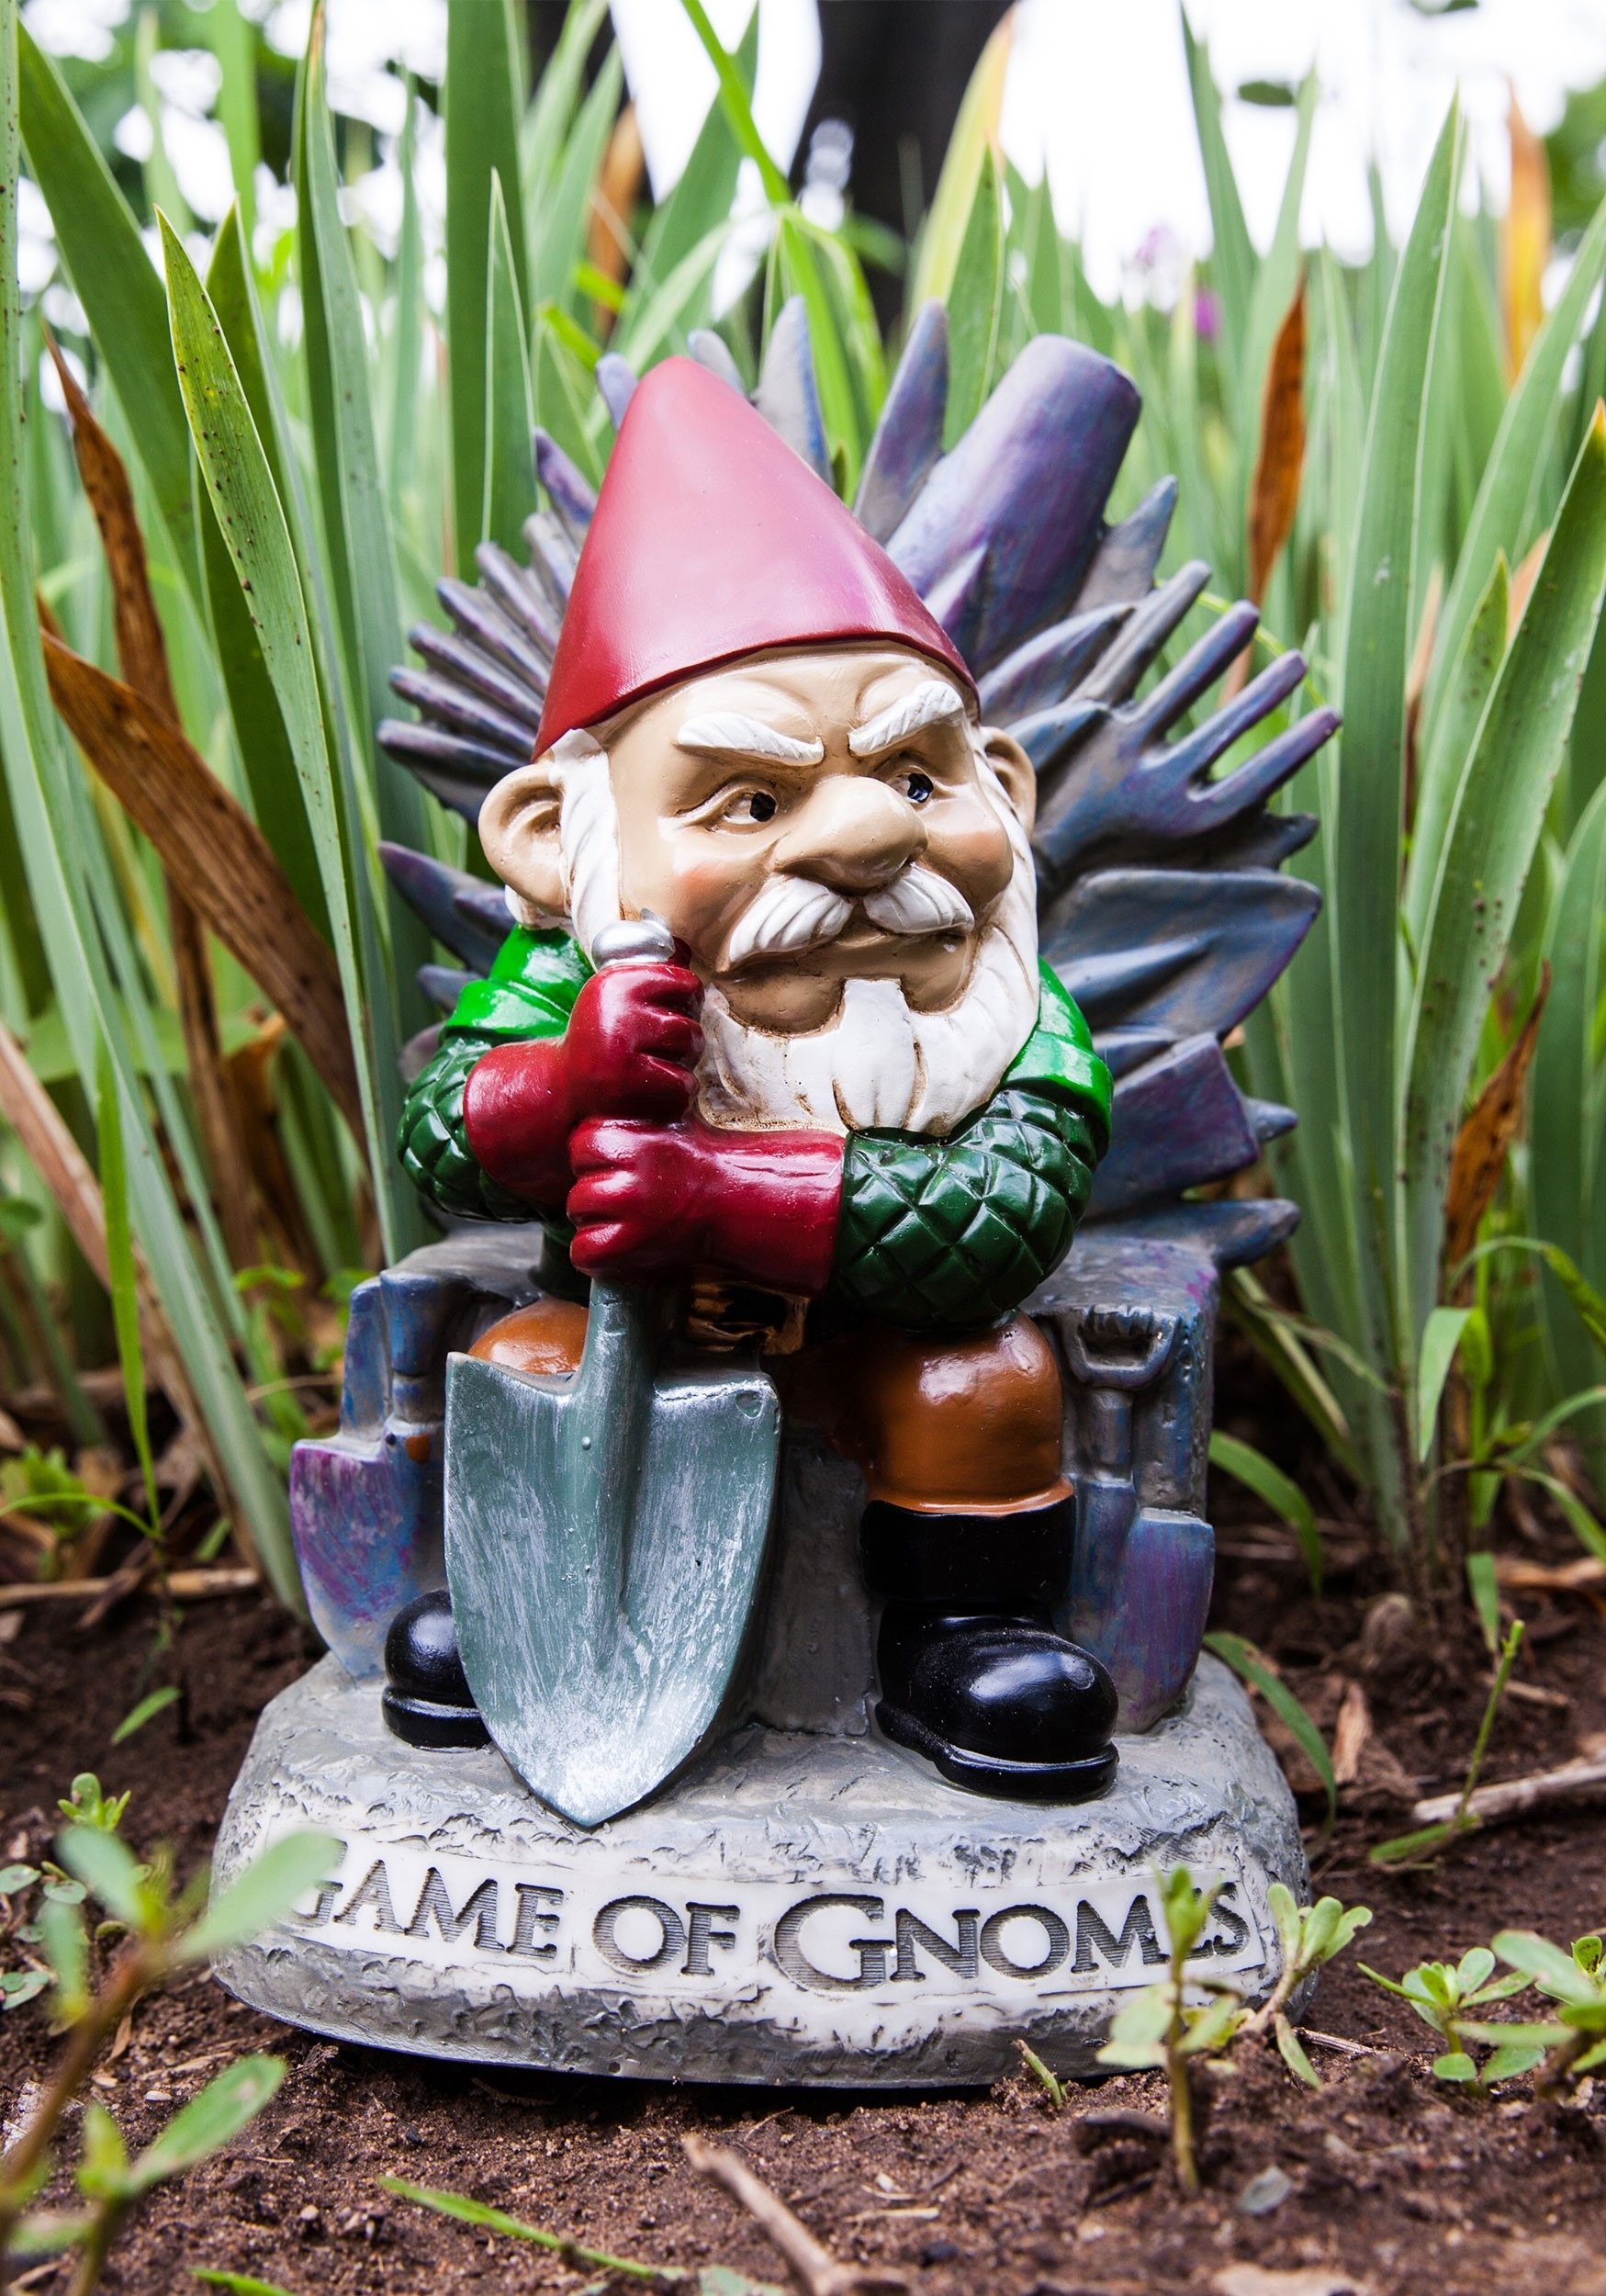 Gnome Garden: Game Of Gnomes Garden Gnome Statue